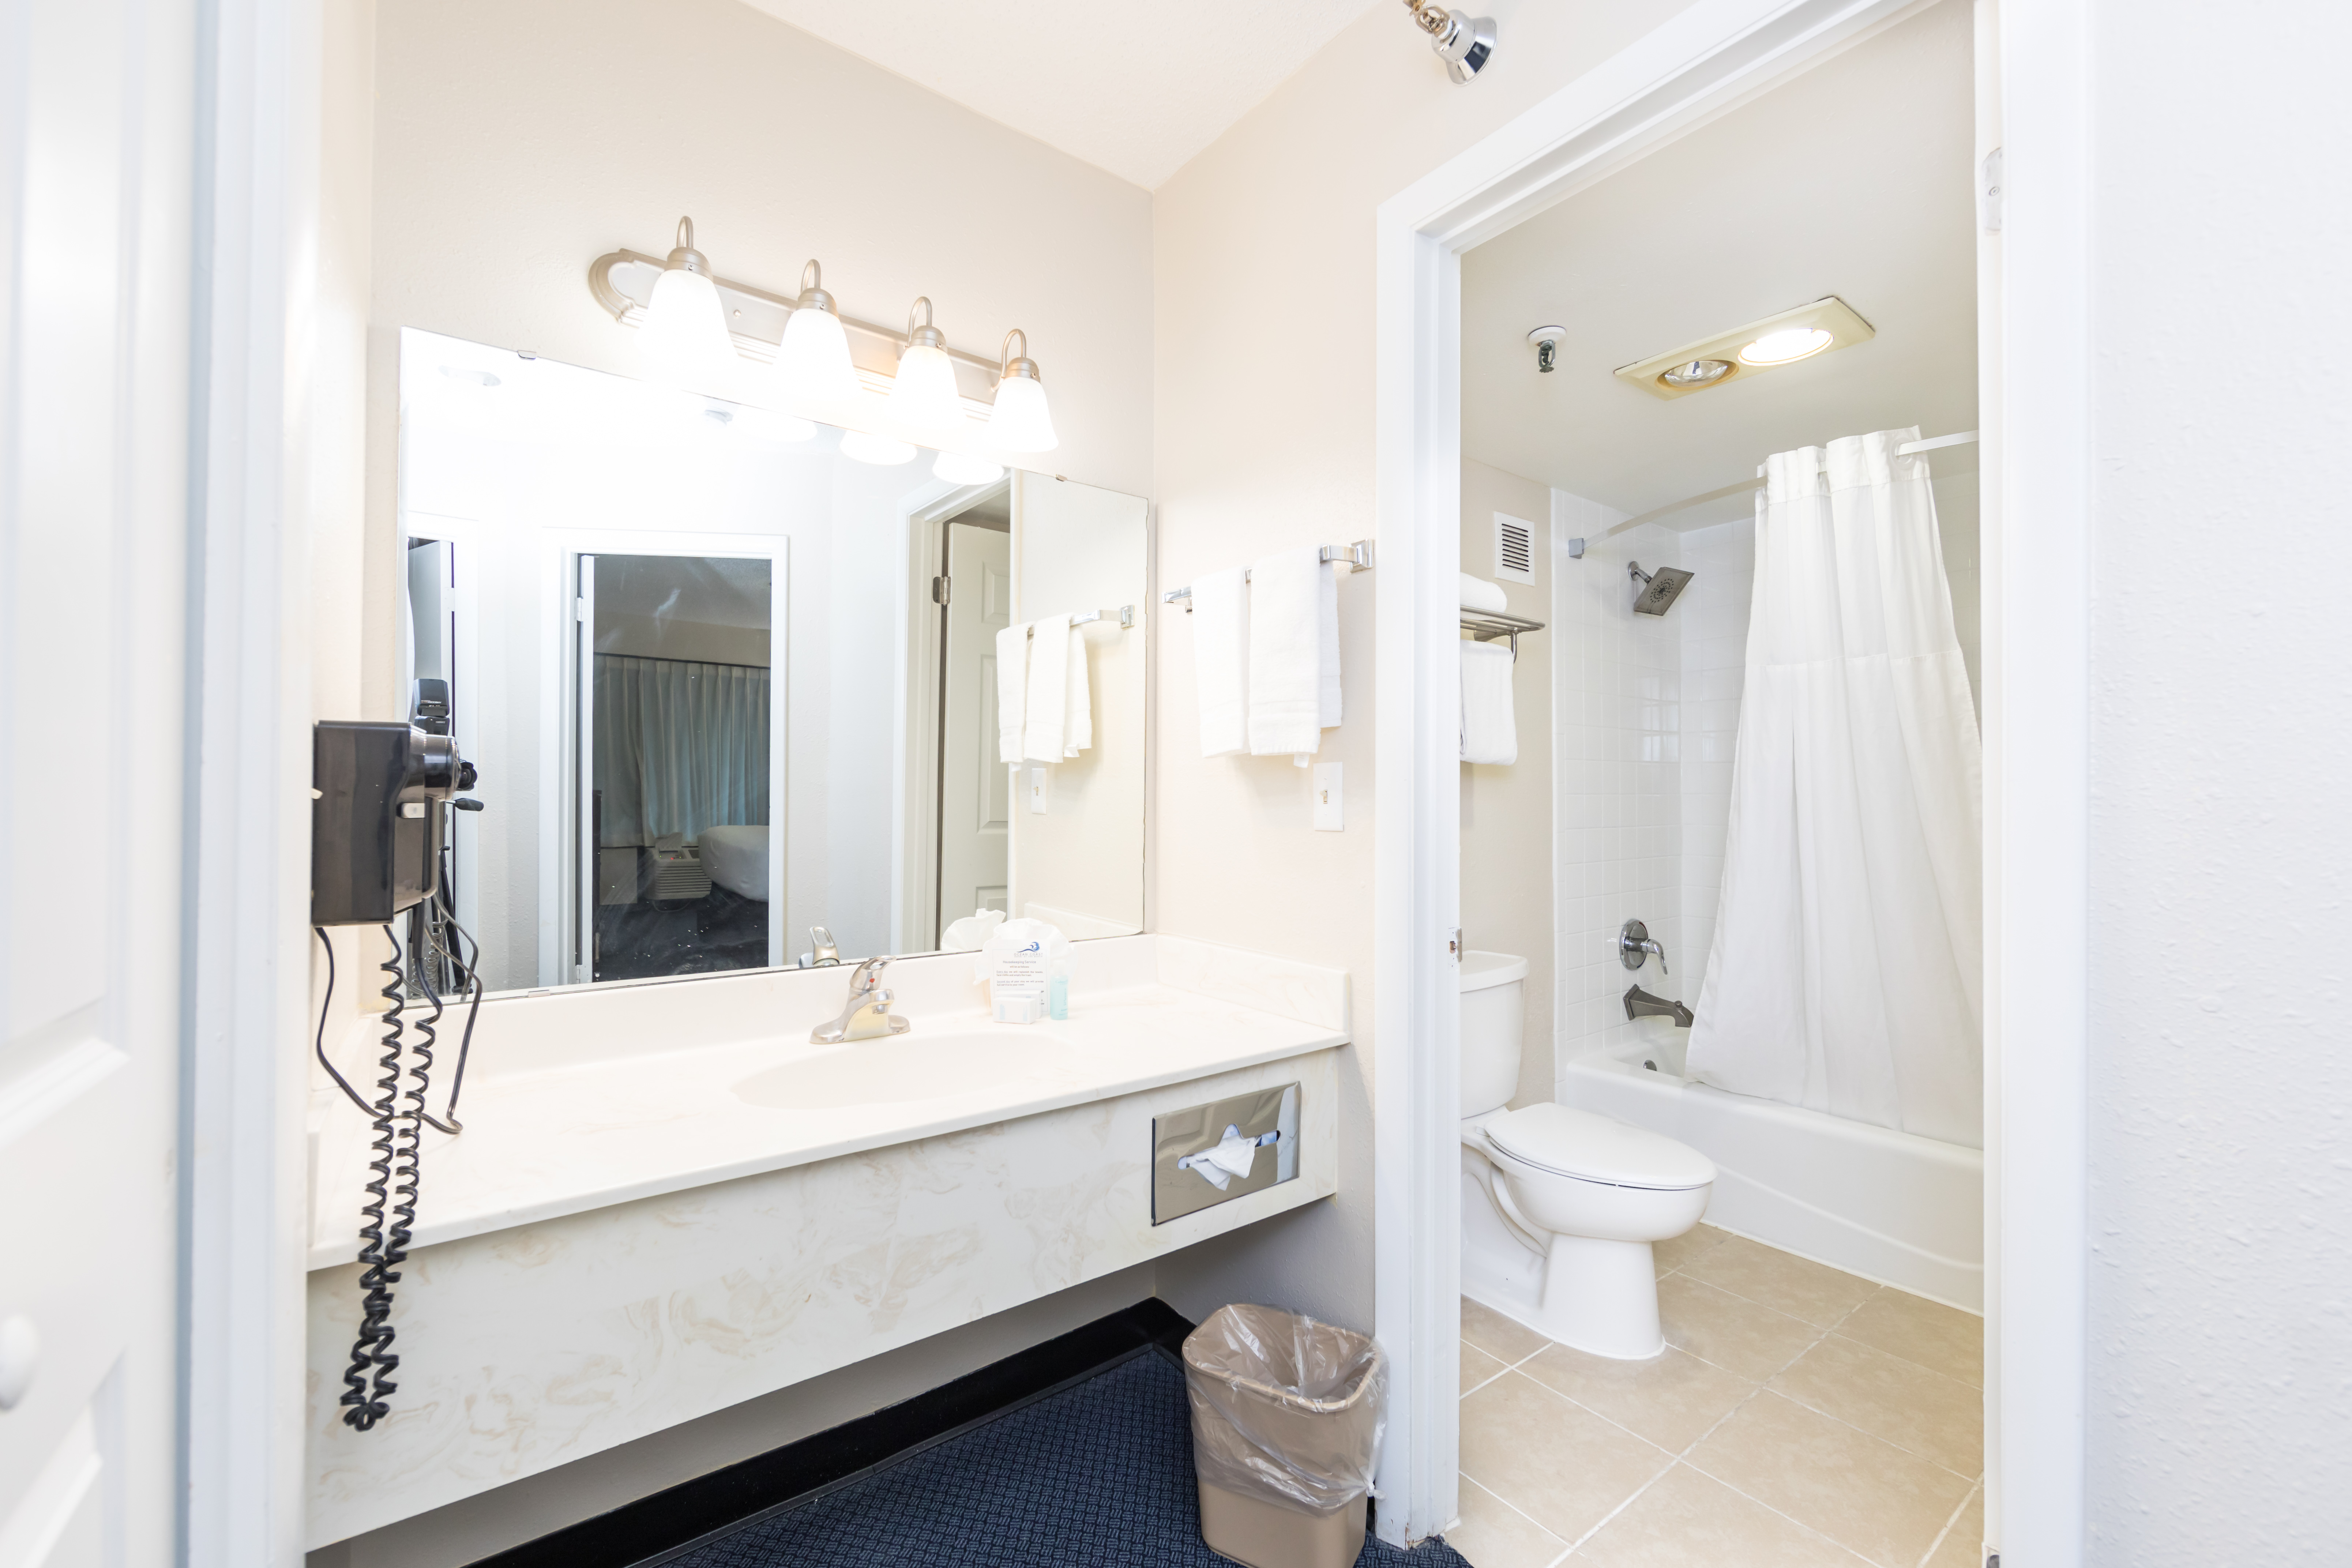 Ocean Coast Hotel Deluxe Suite Bathroom and Amenities